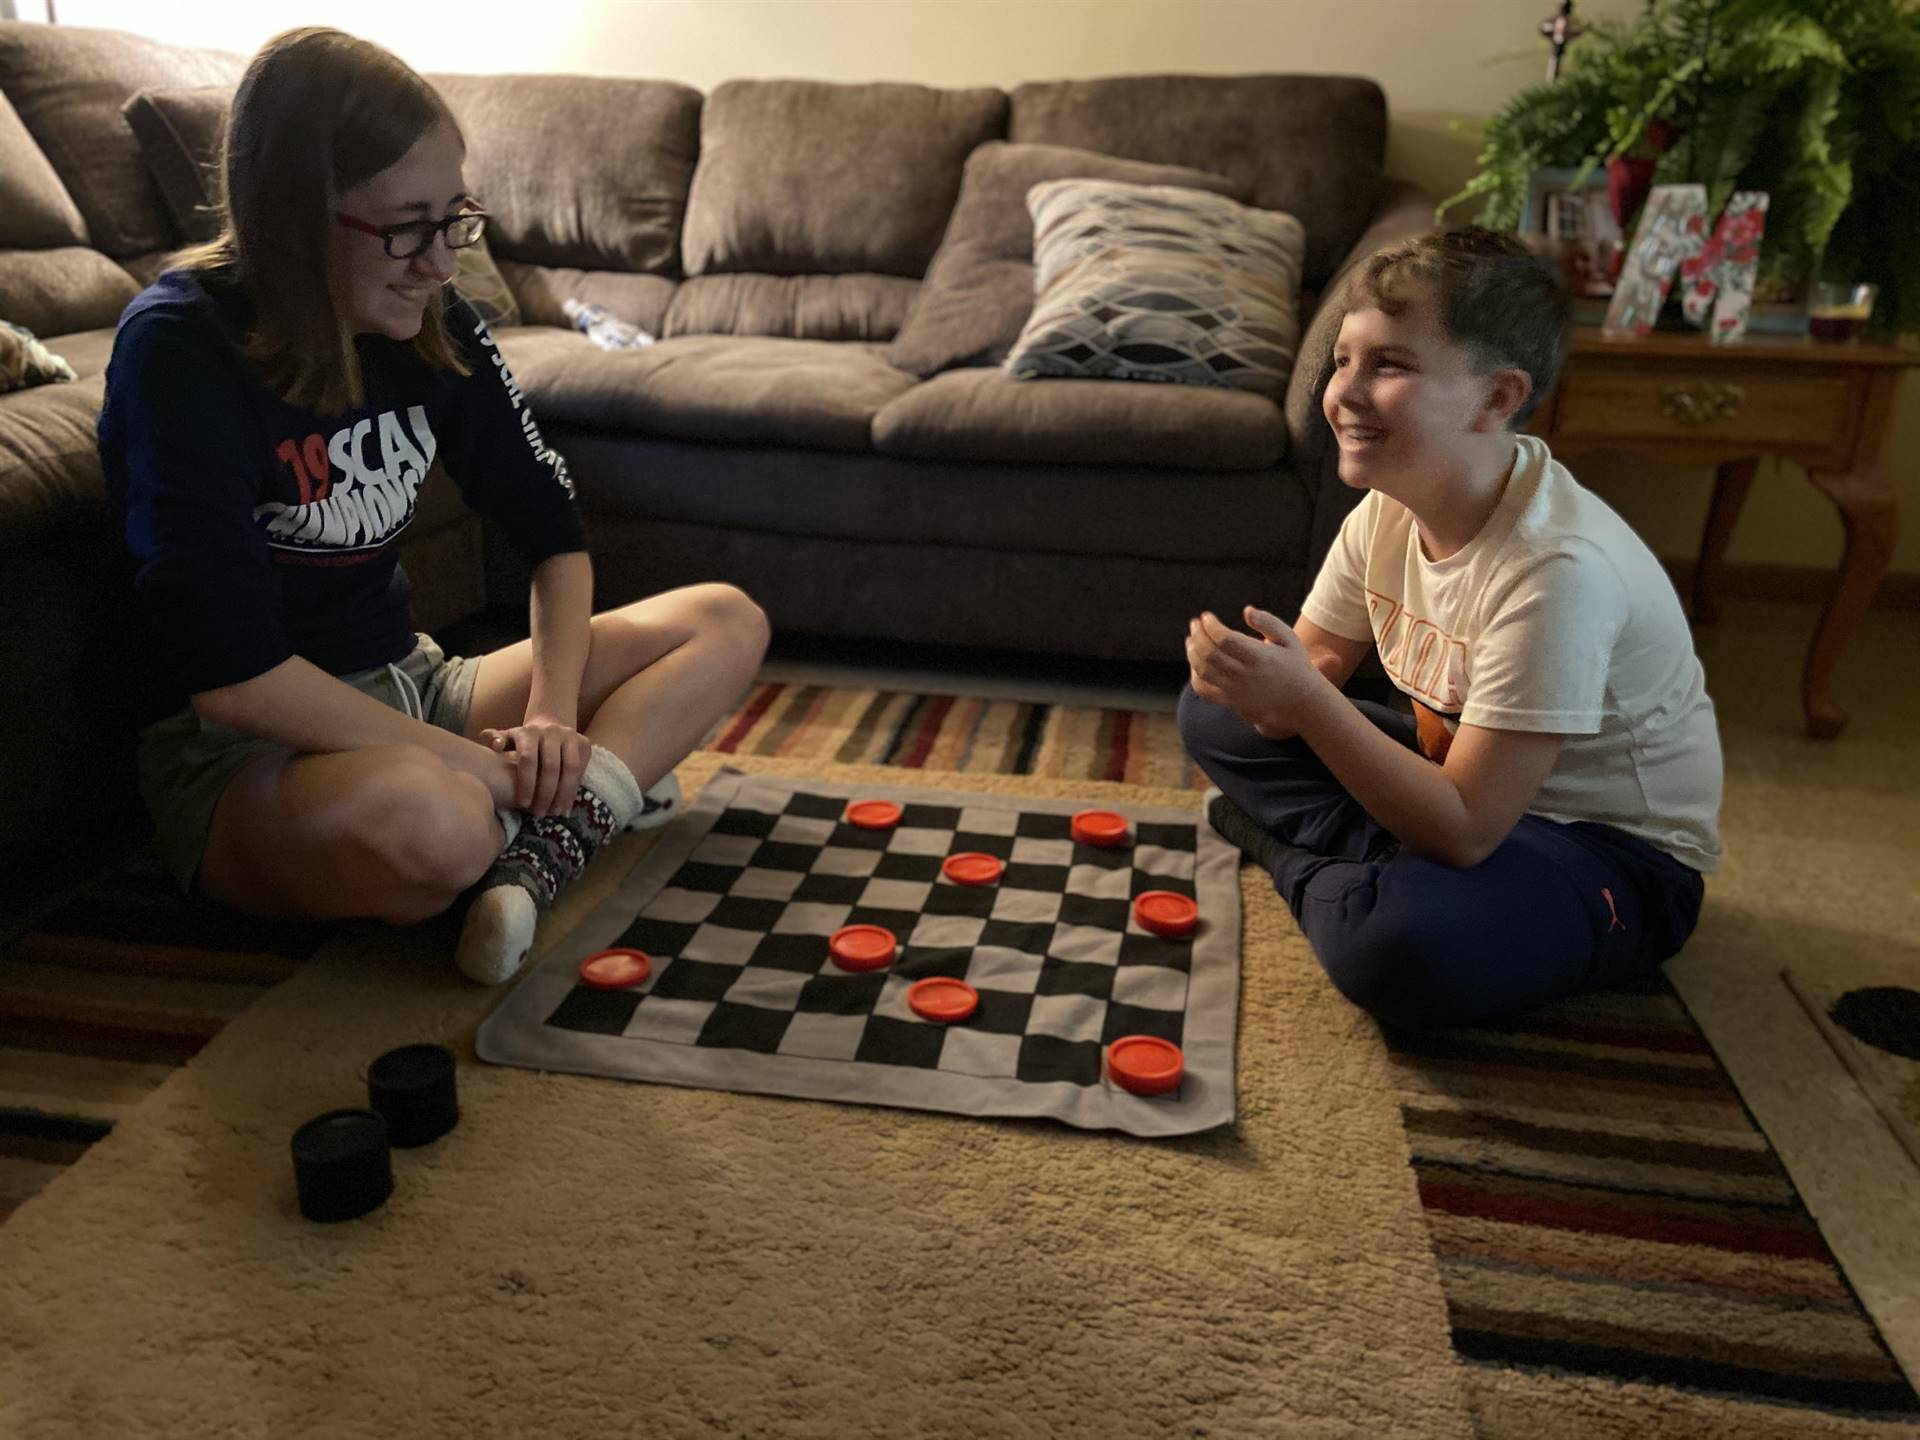 boy playing checkers